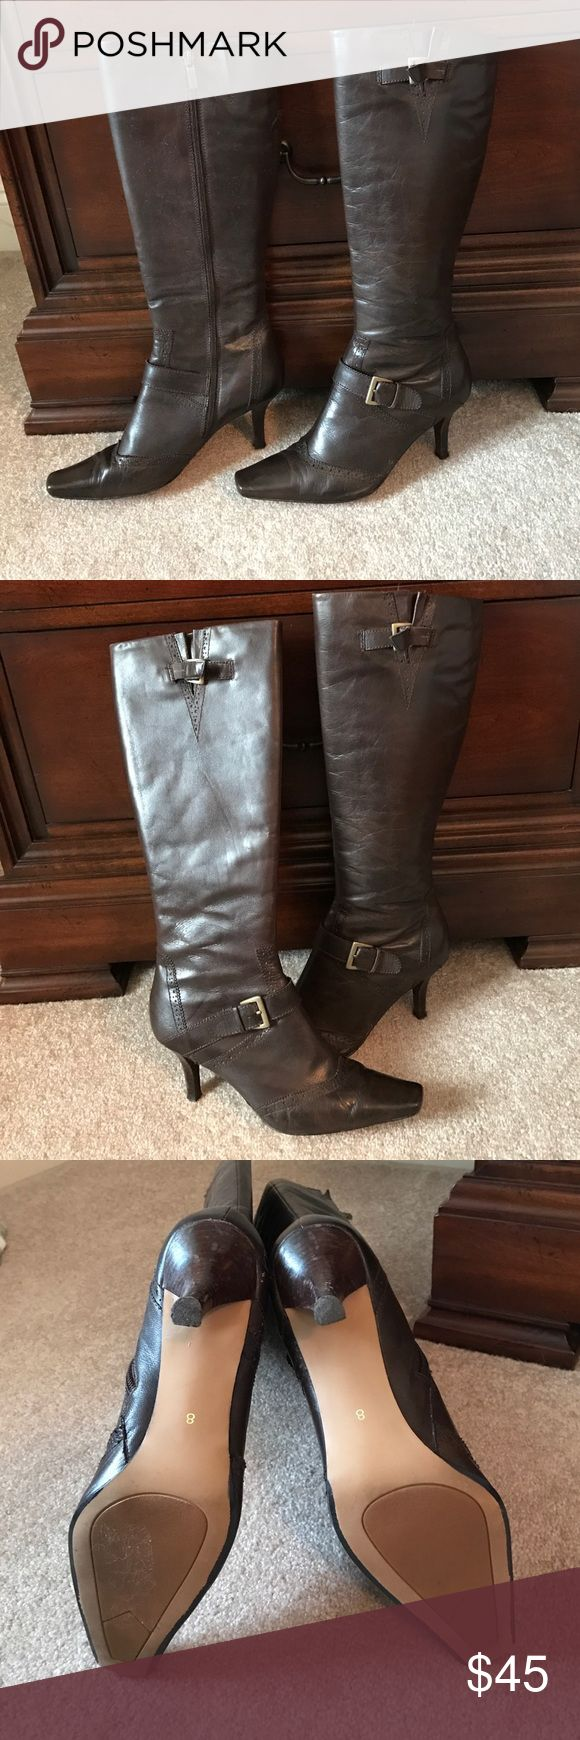 Brown heeled boots Elle brown heeled boots, 3 inch heels Elle Shoes Heeled Boots